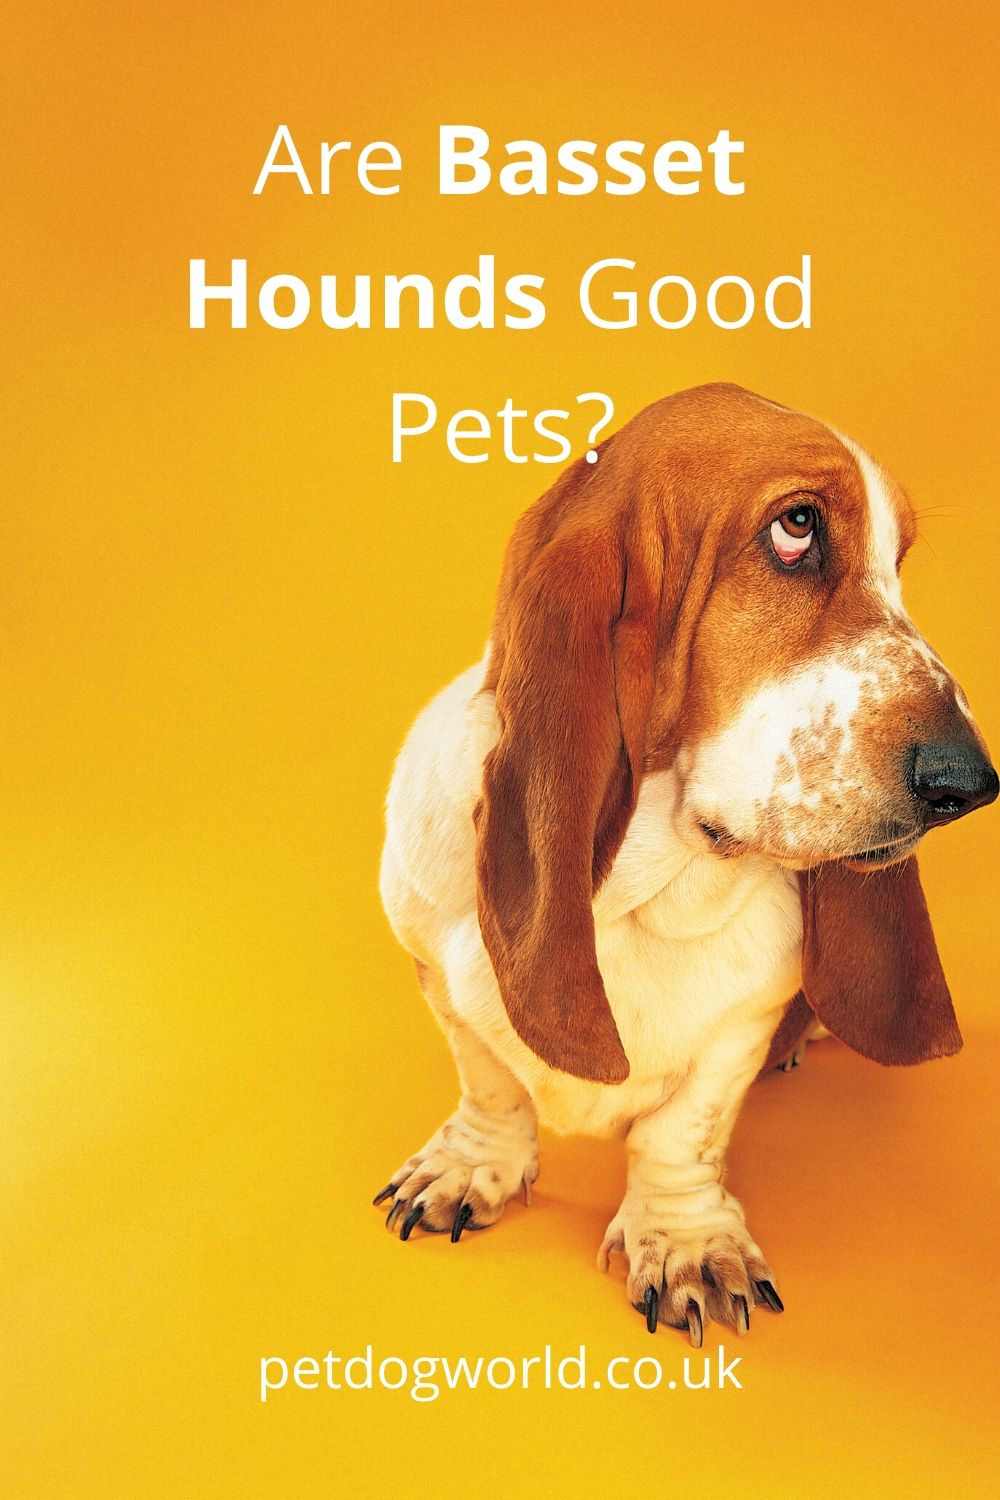 Find out if a Basset Hound is the right breed for you.